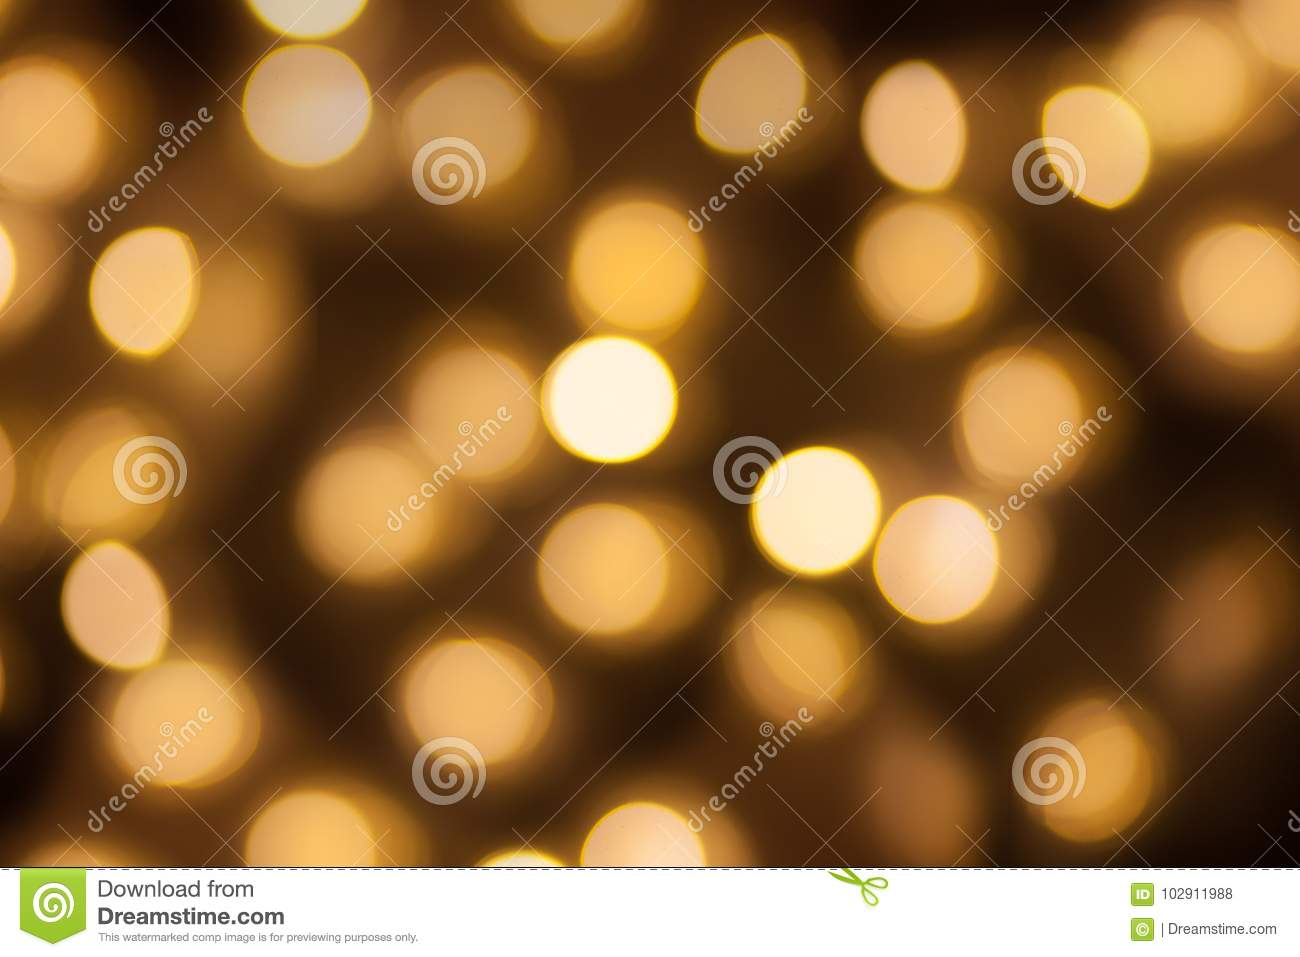 Golden lights bokeh blurred background, abstract beautiful blurry silver Christmas holiday party texture, copy space